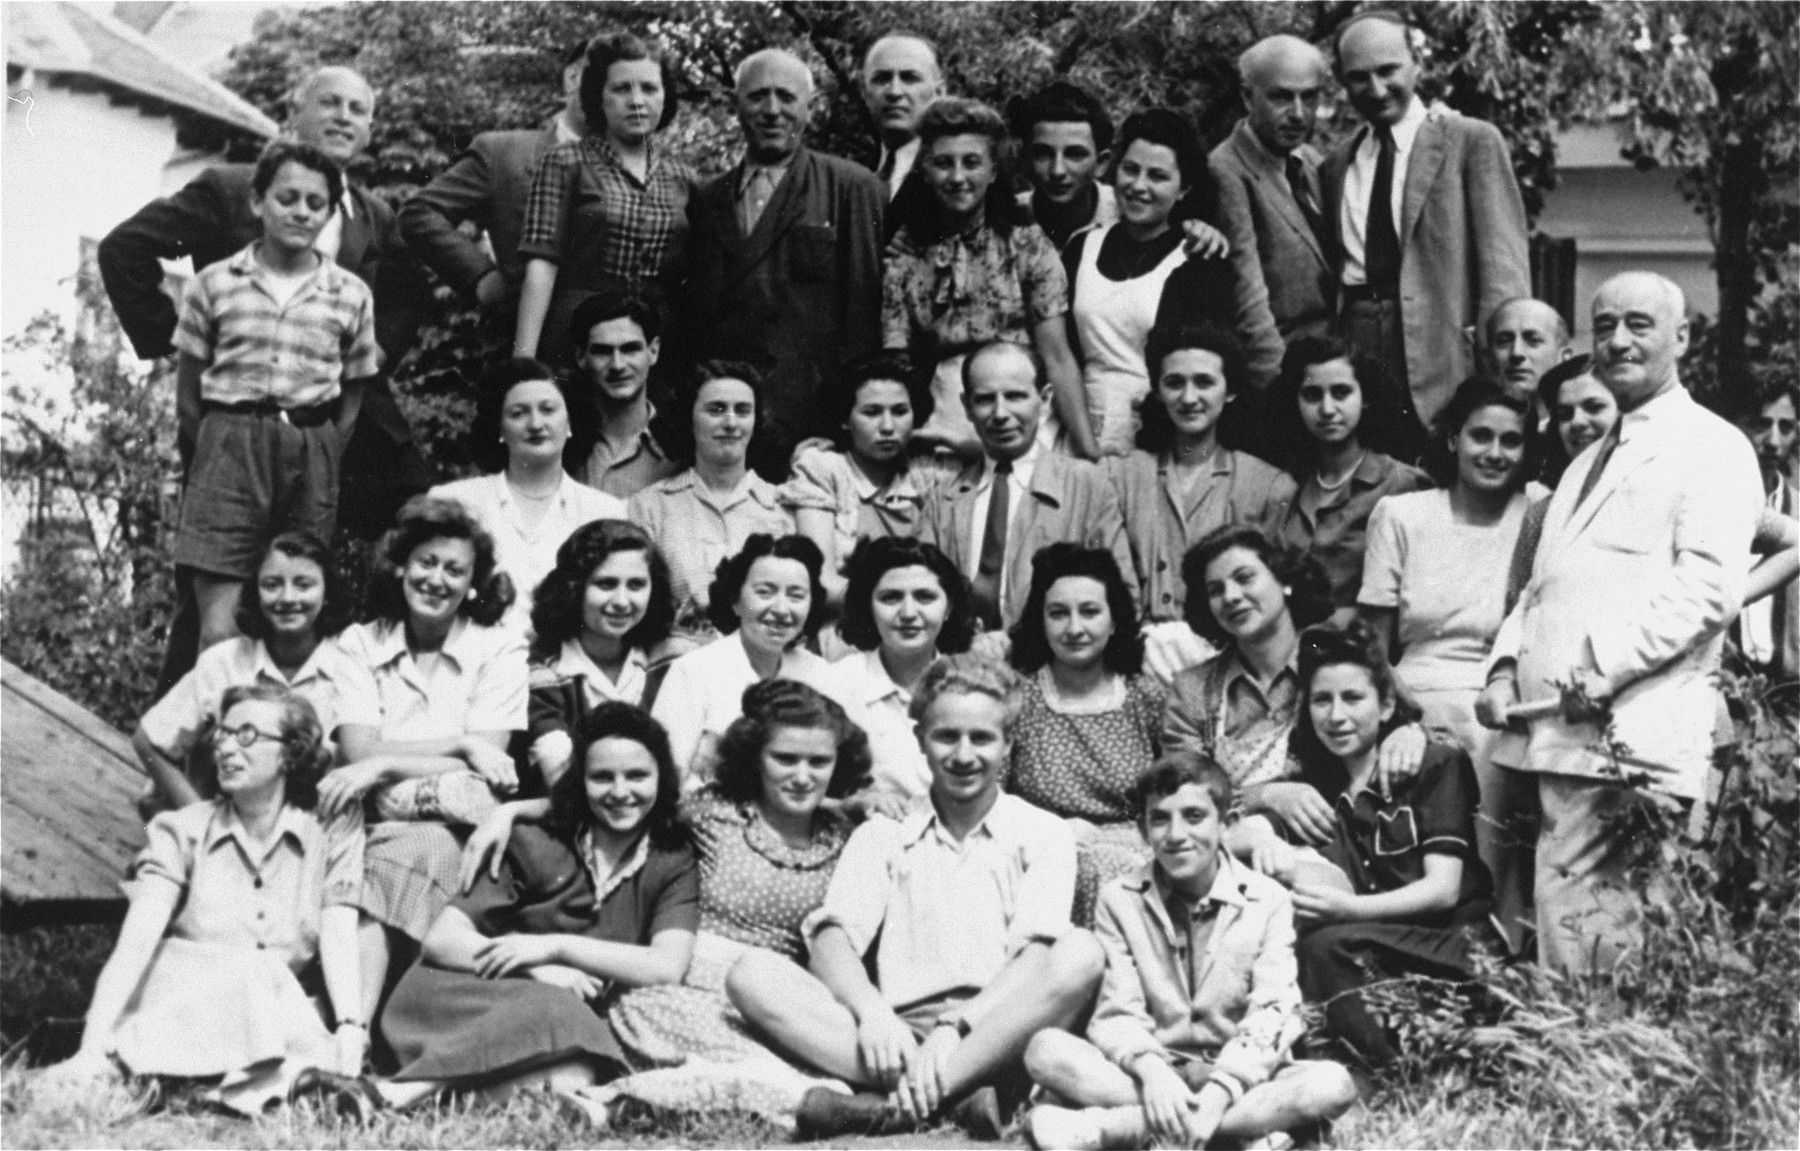 Group portrait of Jewish students attending a book-binding course in Bacau, Romania.   Among those pictured is Jeanine Gutman (second row, third from the right).  This school was one of many organized by the Jewish community after Jewish youth were excluded from the Romanian school system.